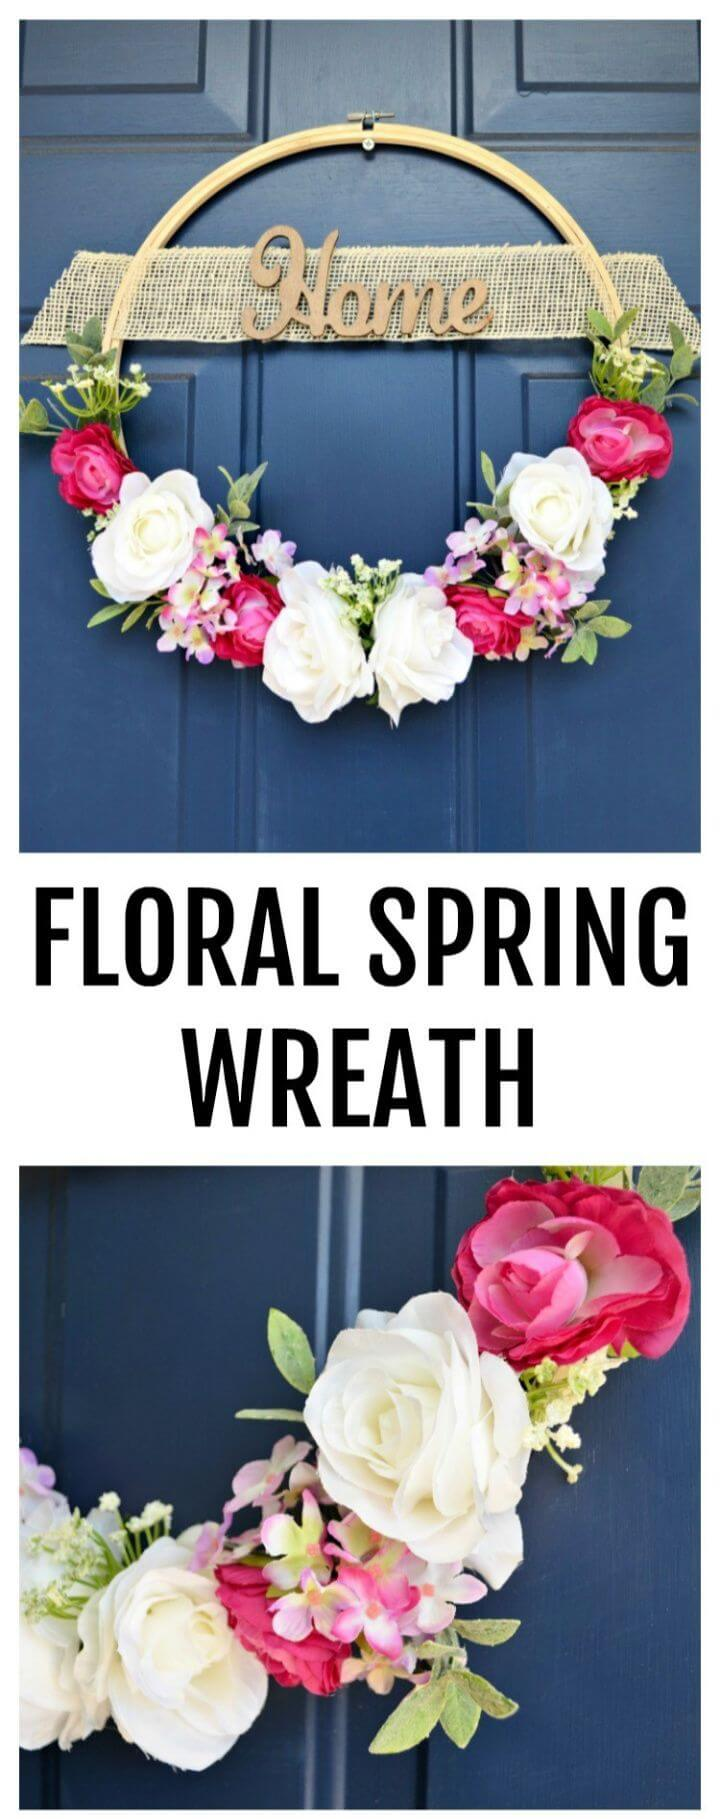 DIY Floral Spring Wreath From An Embroidery Hoop